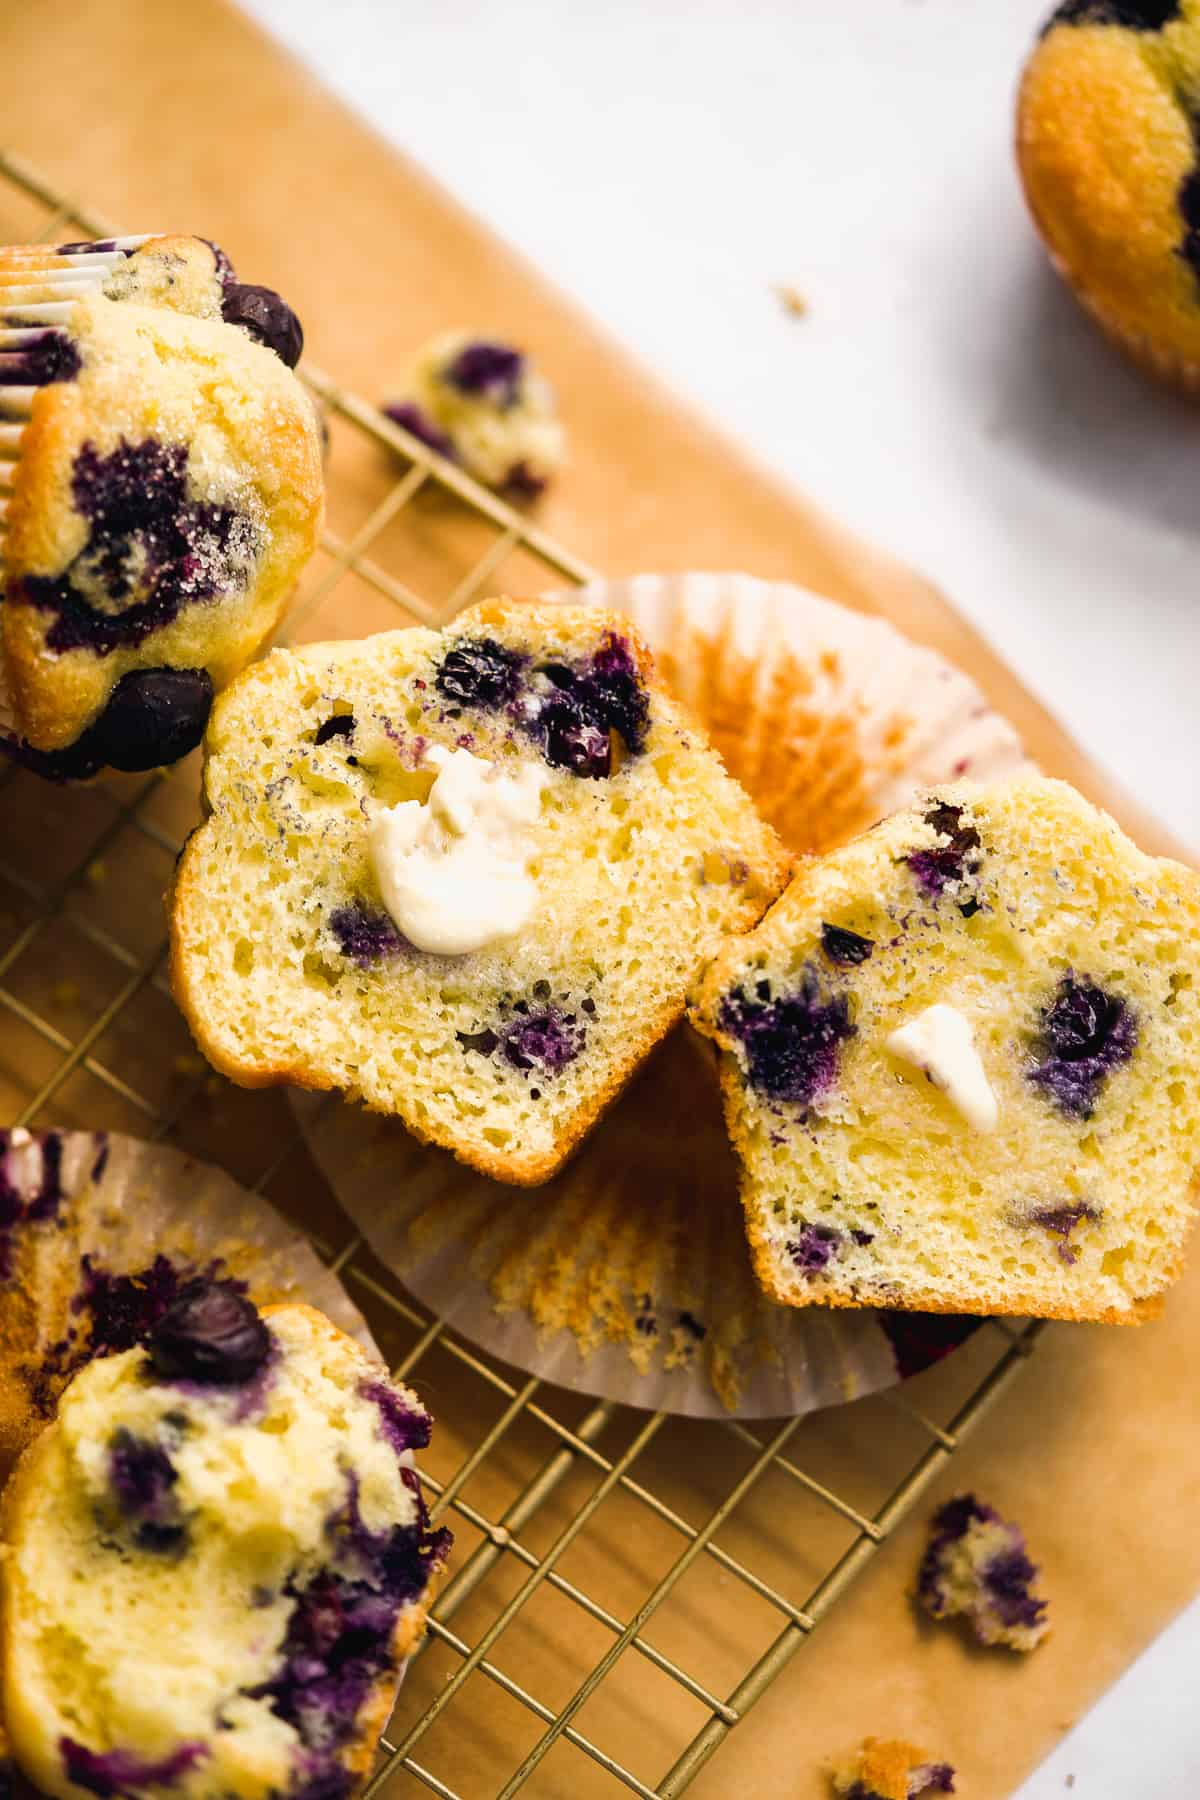 Blueberry muffin sliced in half on a wire rack with butter.